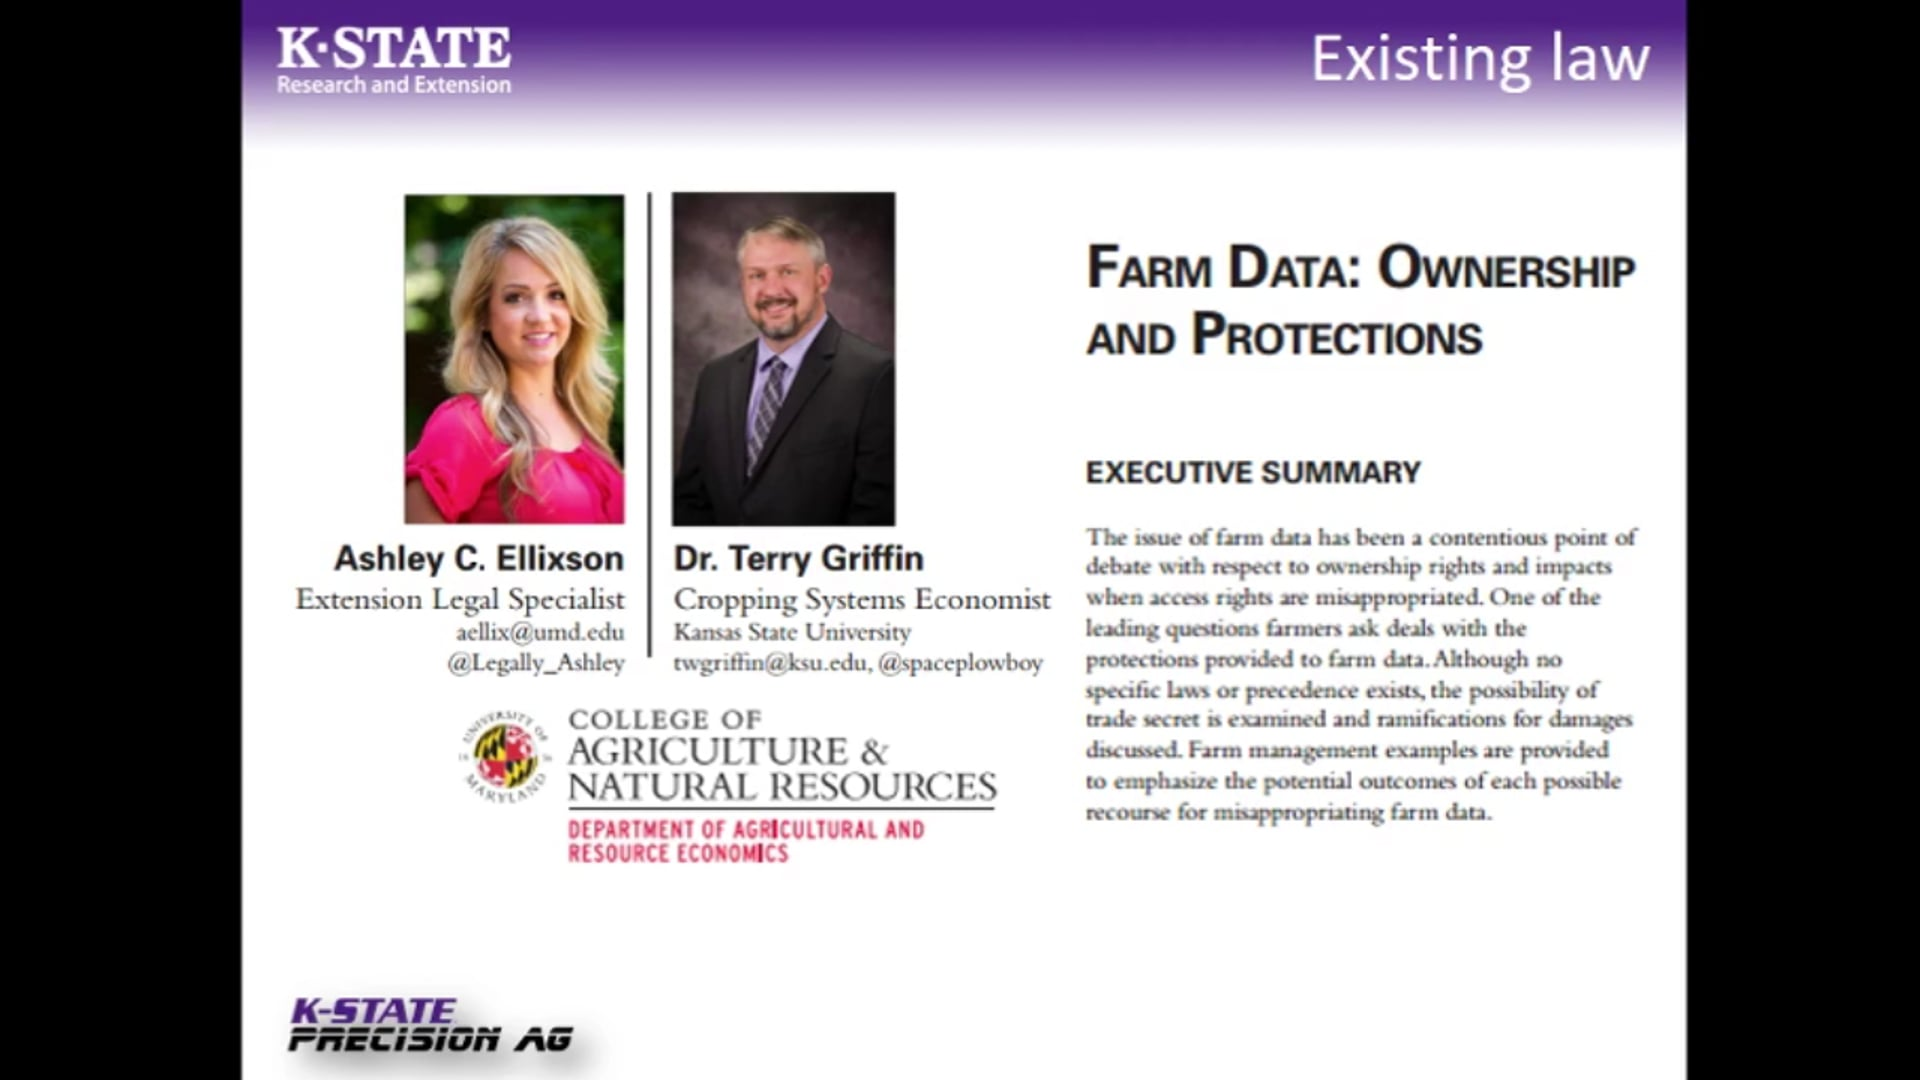 Big data implications for agriculture. Terry Griffin